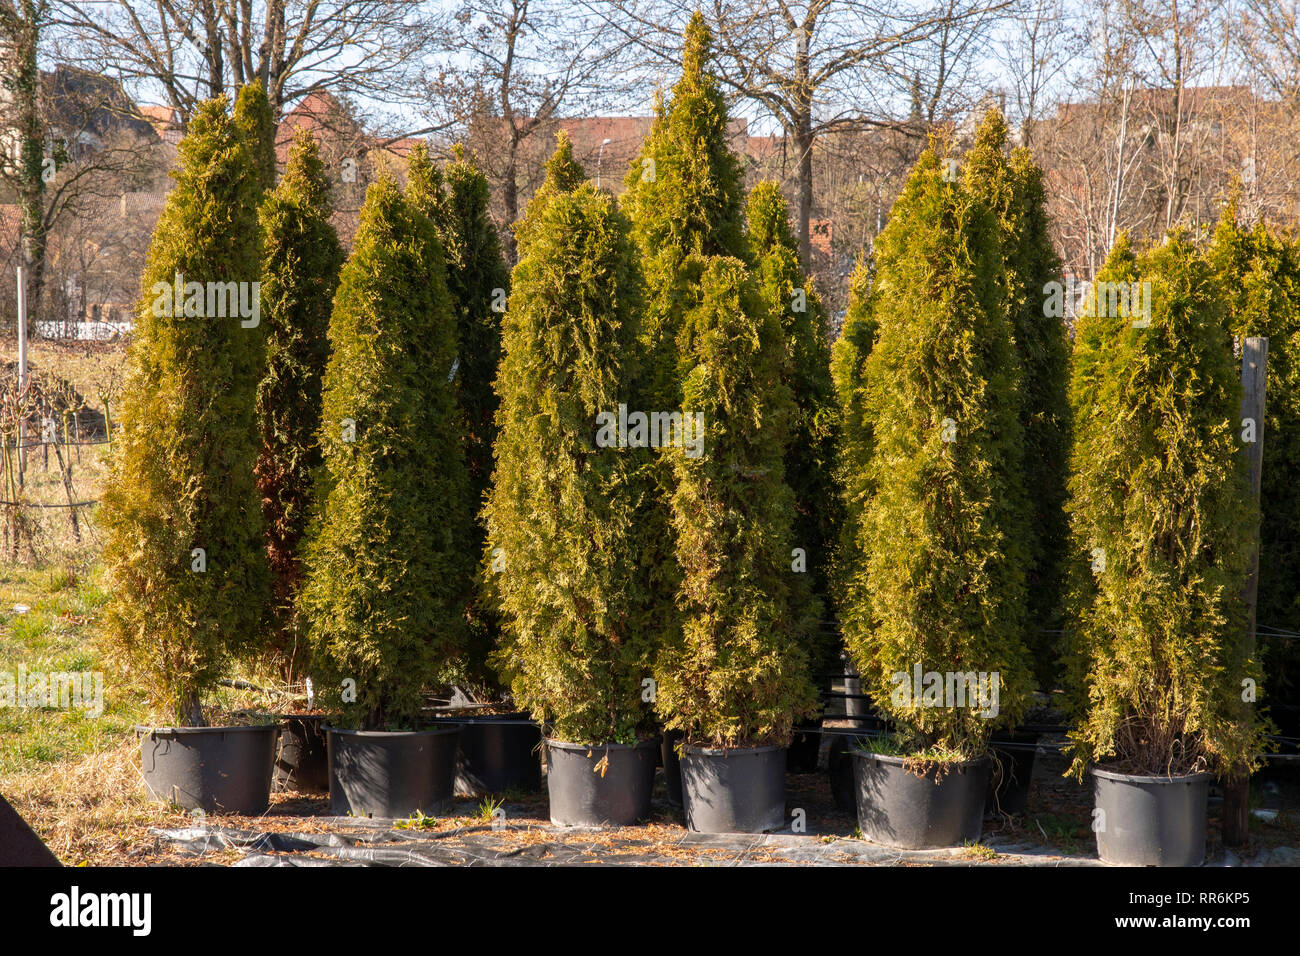 Nursery breeds new Tuja hedges in pots Stock Photo